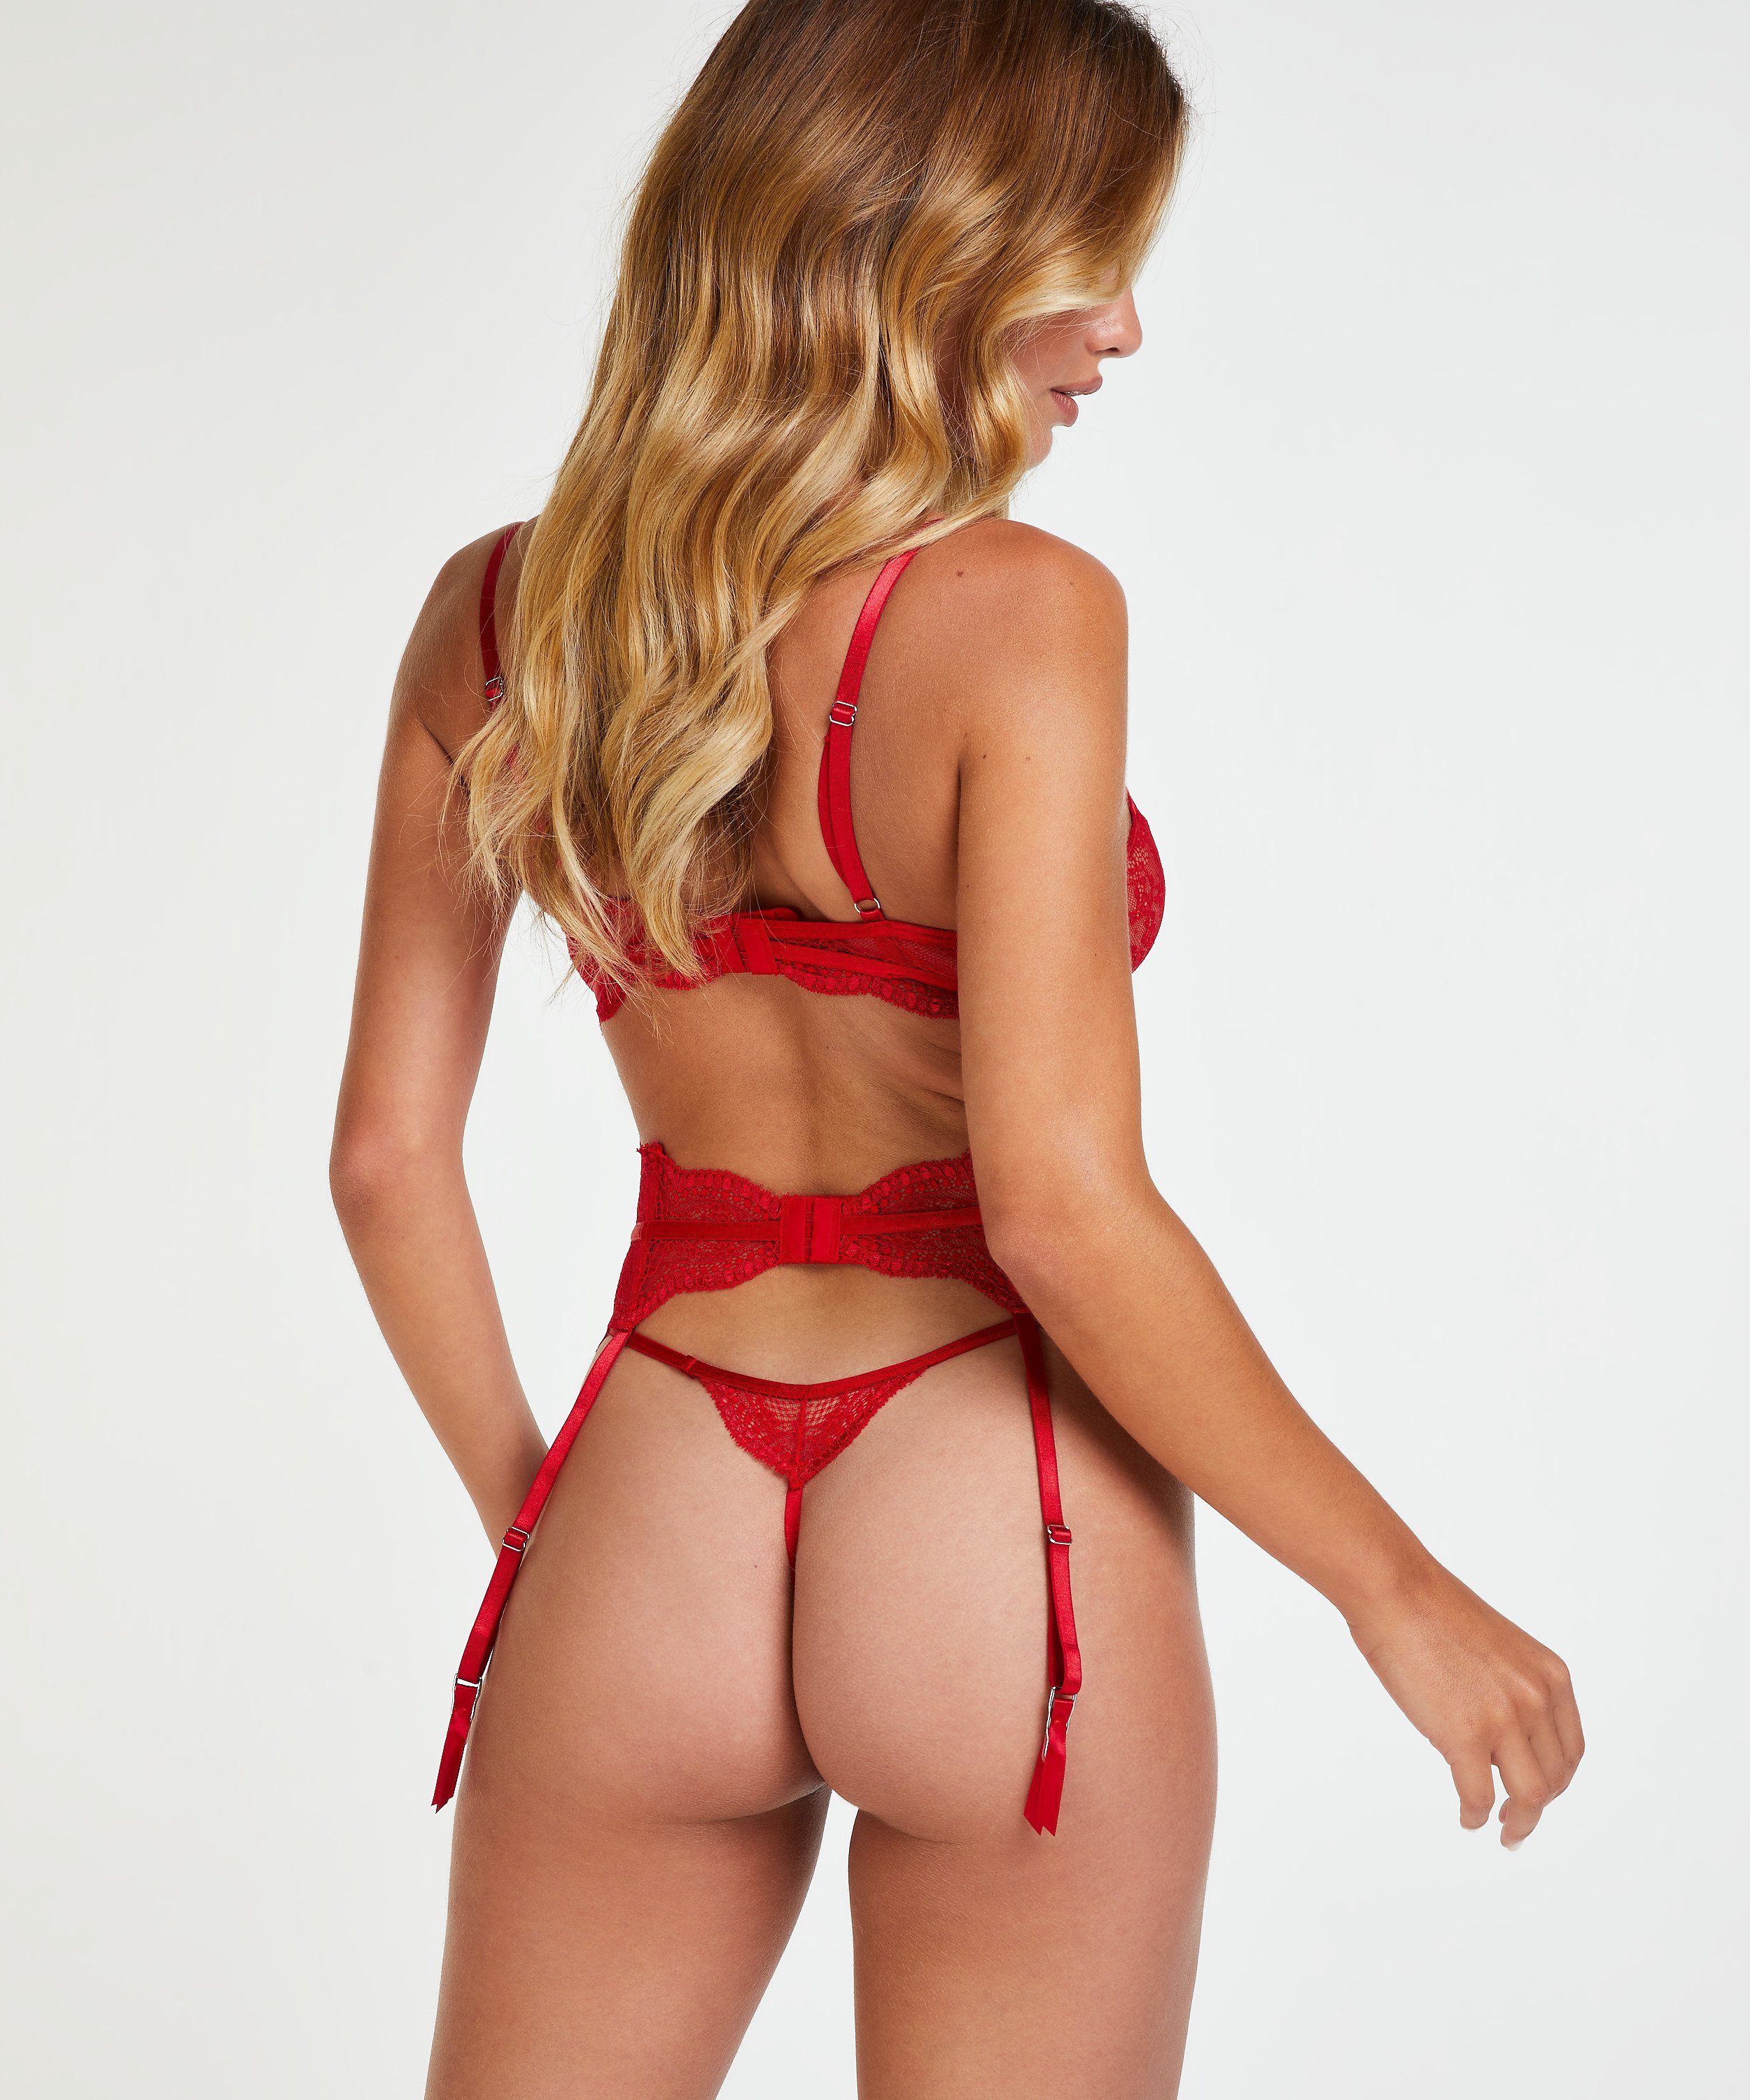 Isabelle Suspenders, Red, main